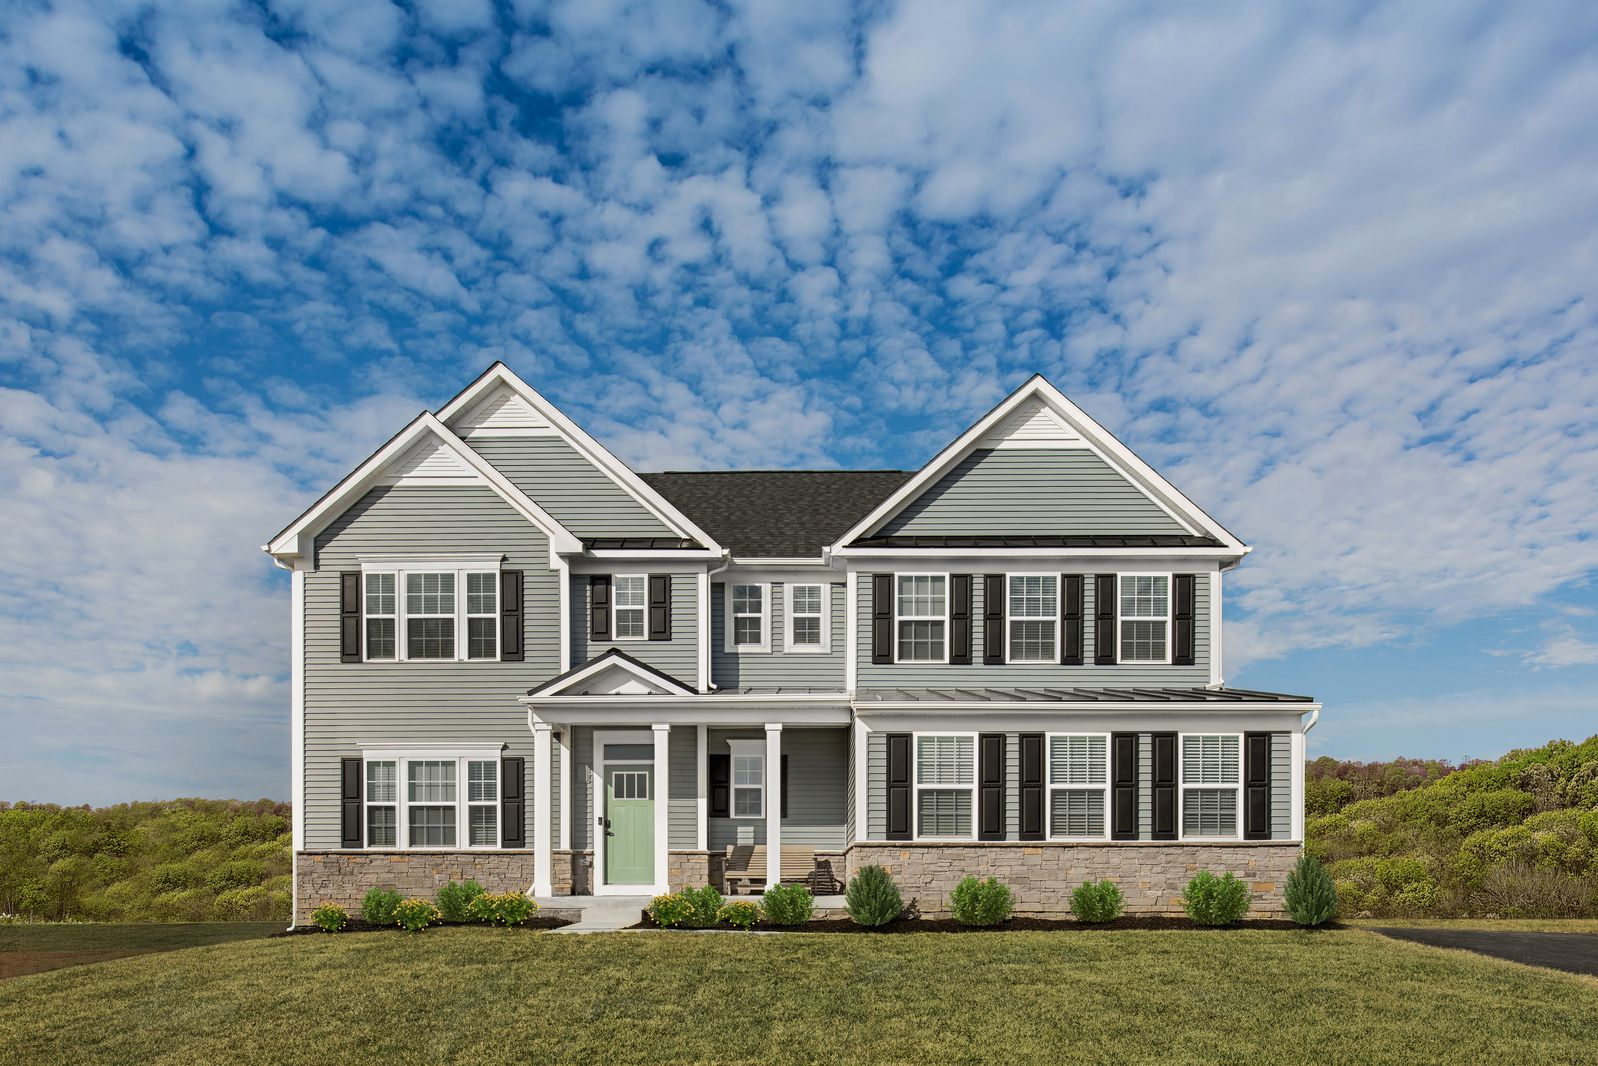 Welcome to Monarch Woods:New homes on 1+ acres in Tabernacle with all the space you need, from the low $400s.